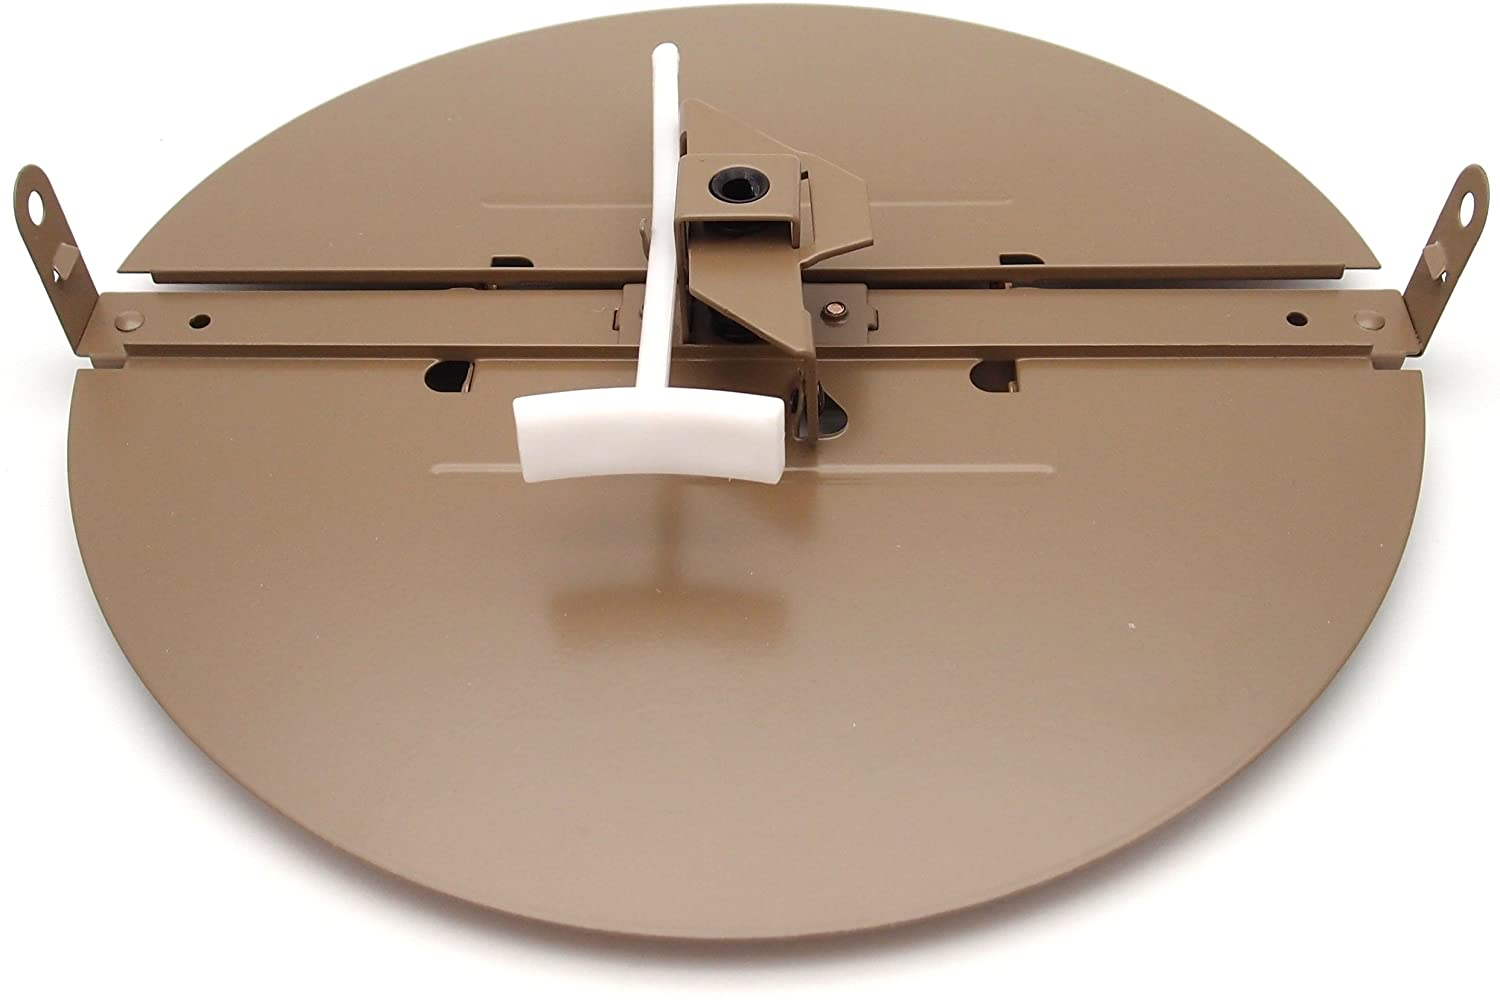 8 Butterfly Damper - Control Your Airflow on Drop Ceiling grilles of 24x24 (8 Round Duct Opening)